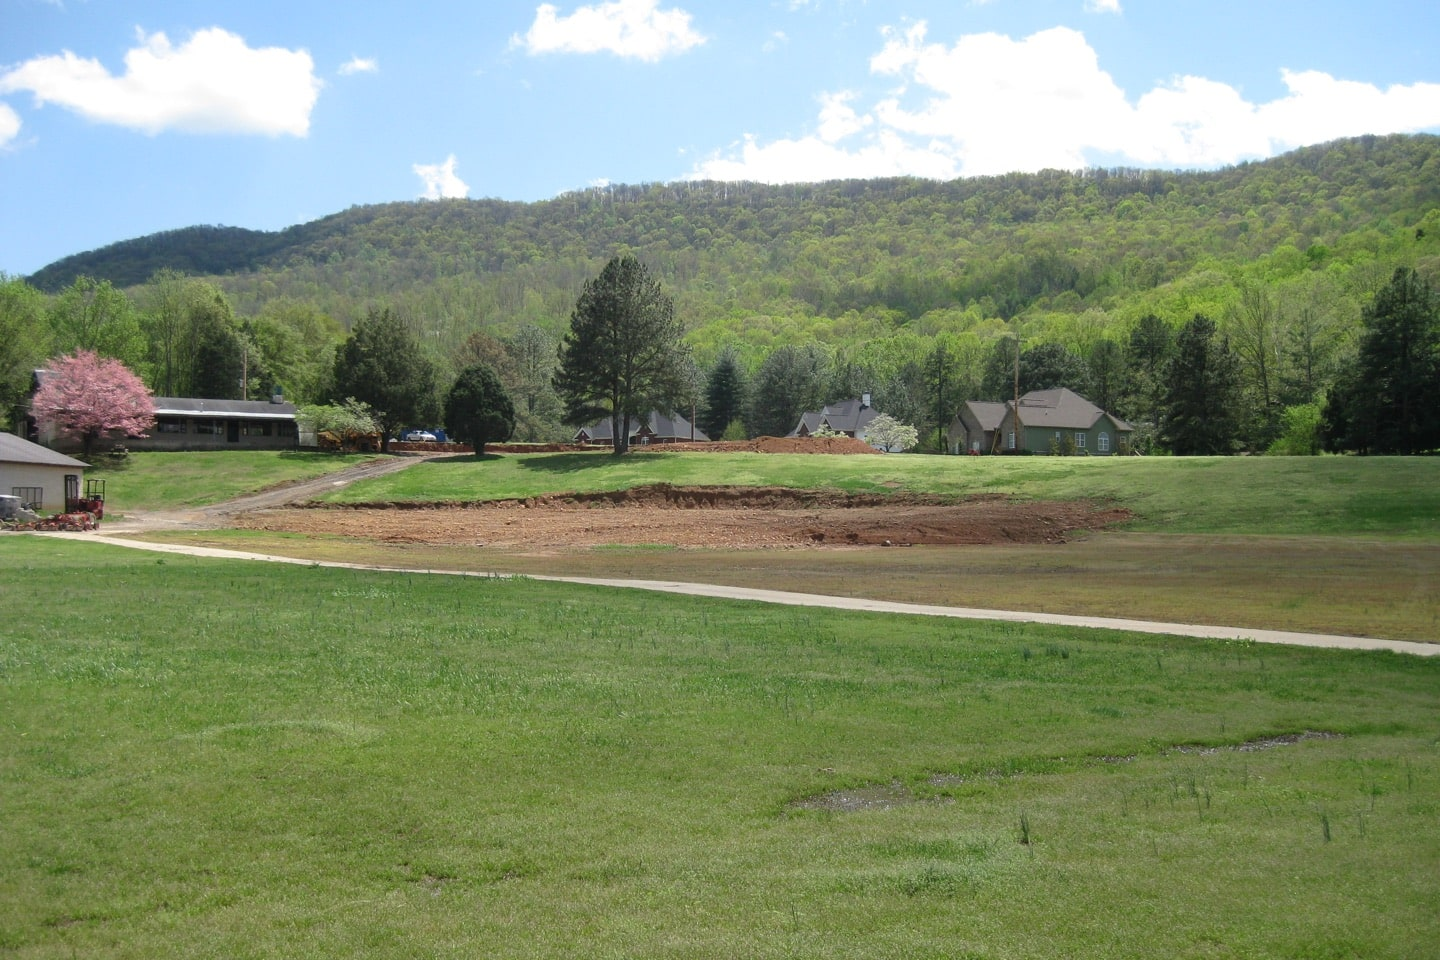 The 9th hole before construction